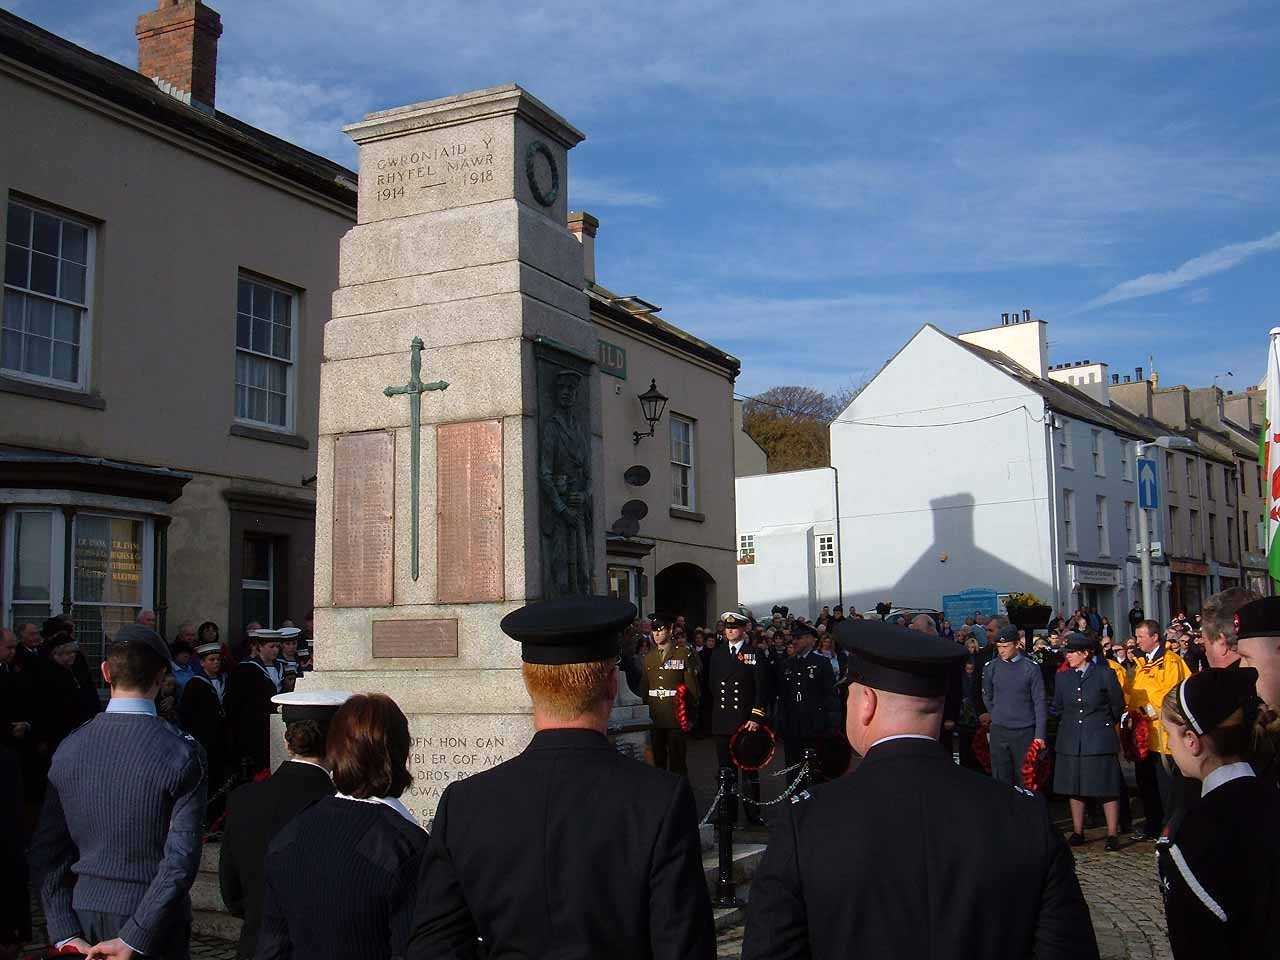 Anglesey, Holyhead, Remembrance Sunday 2006 - Members of the Services pay their respects